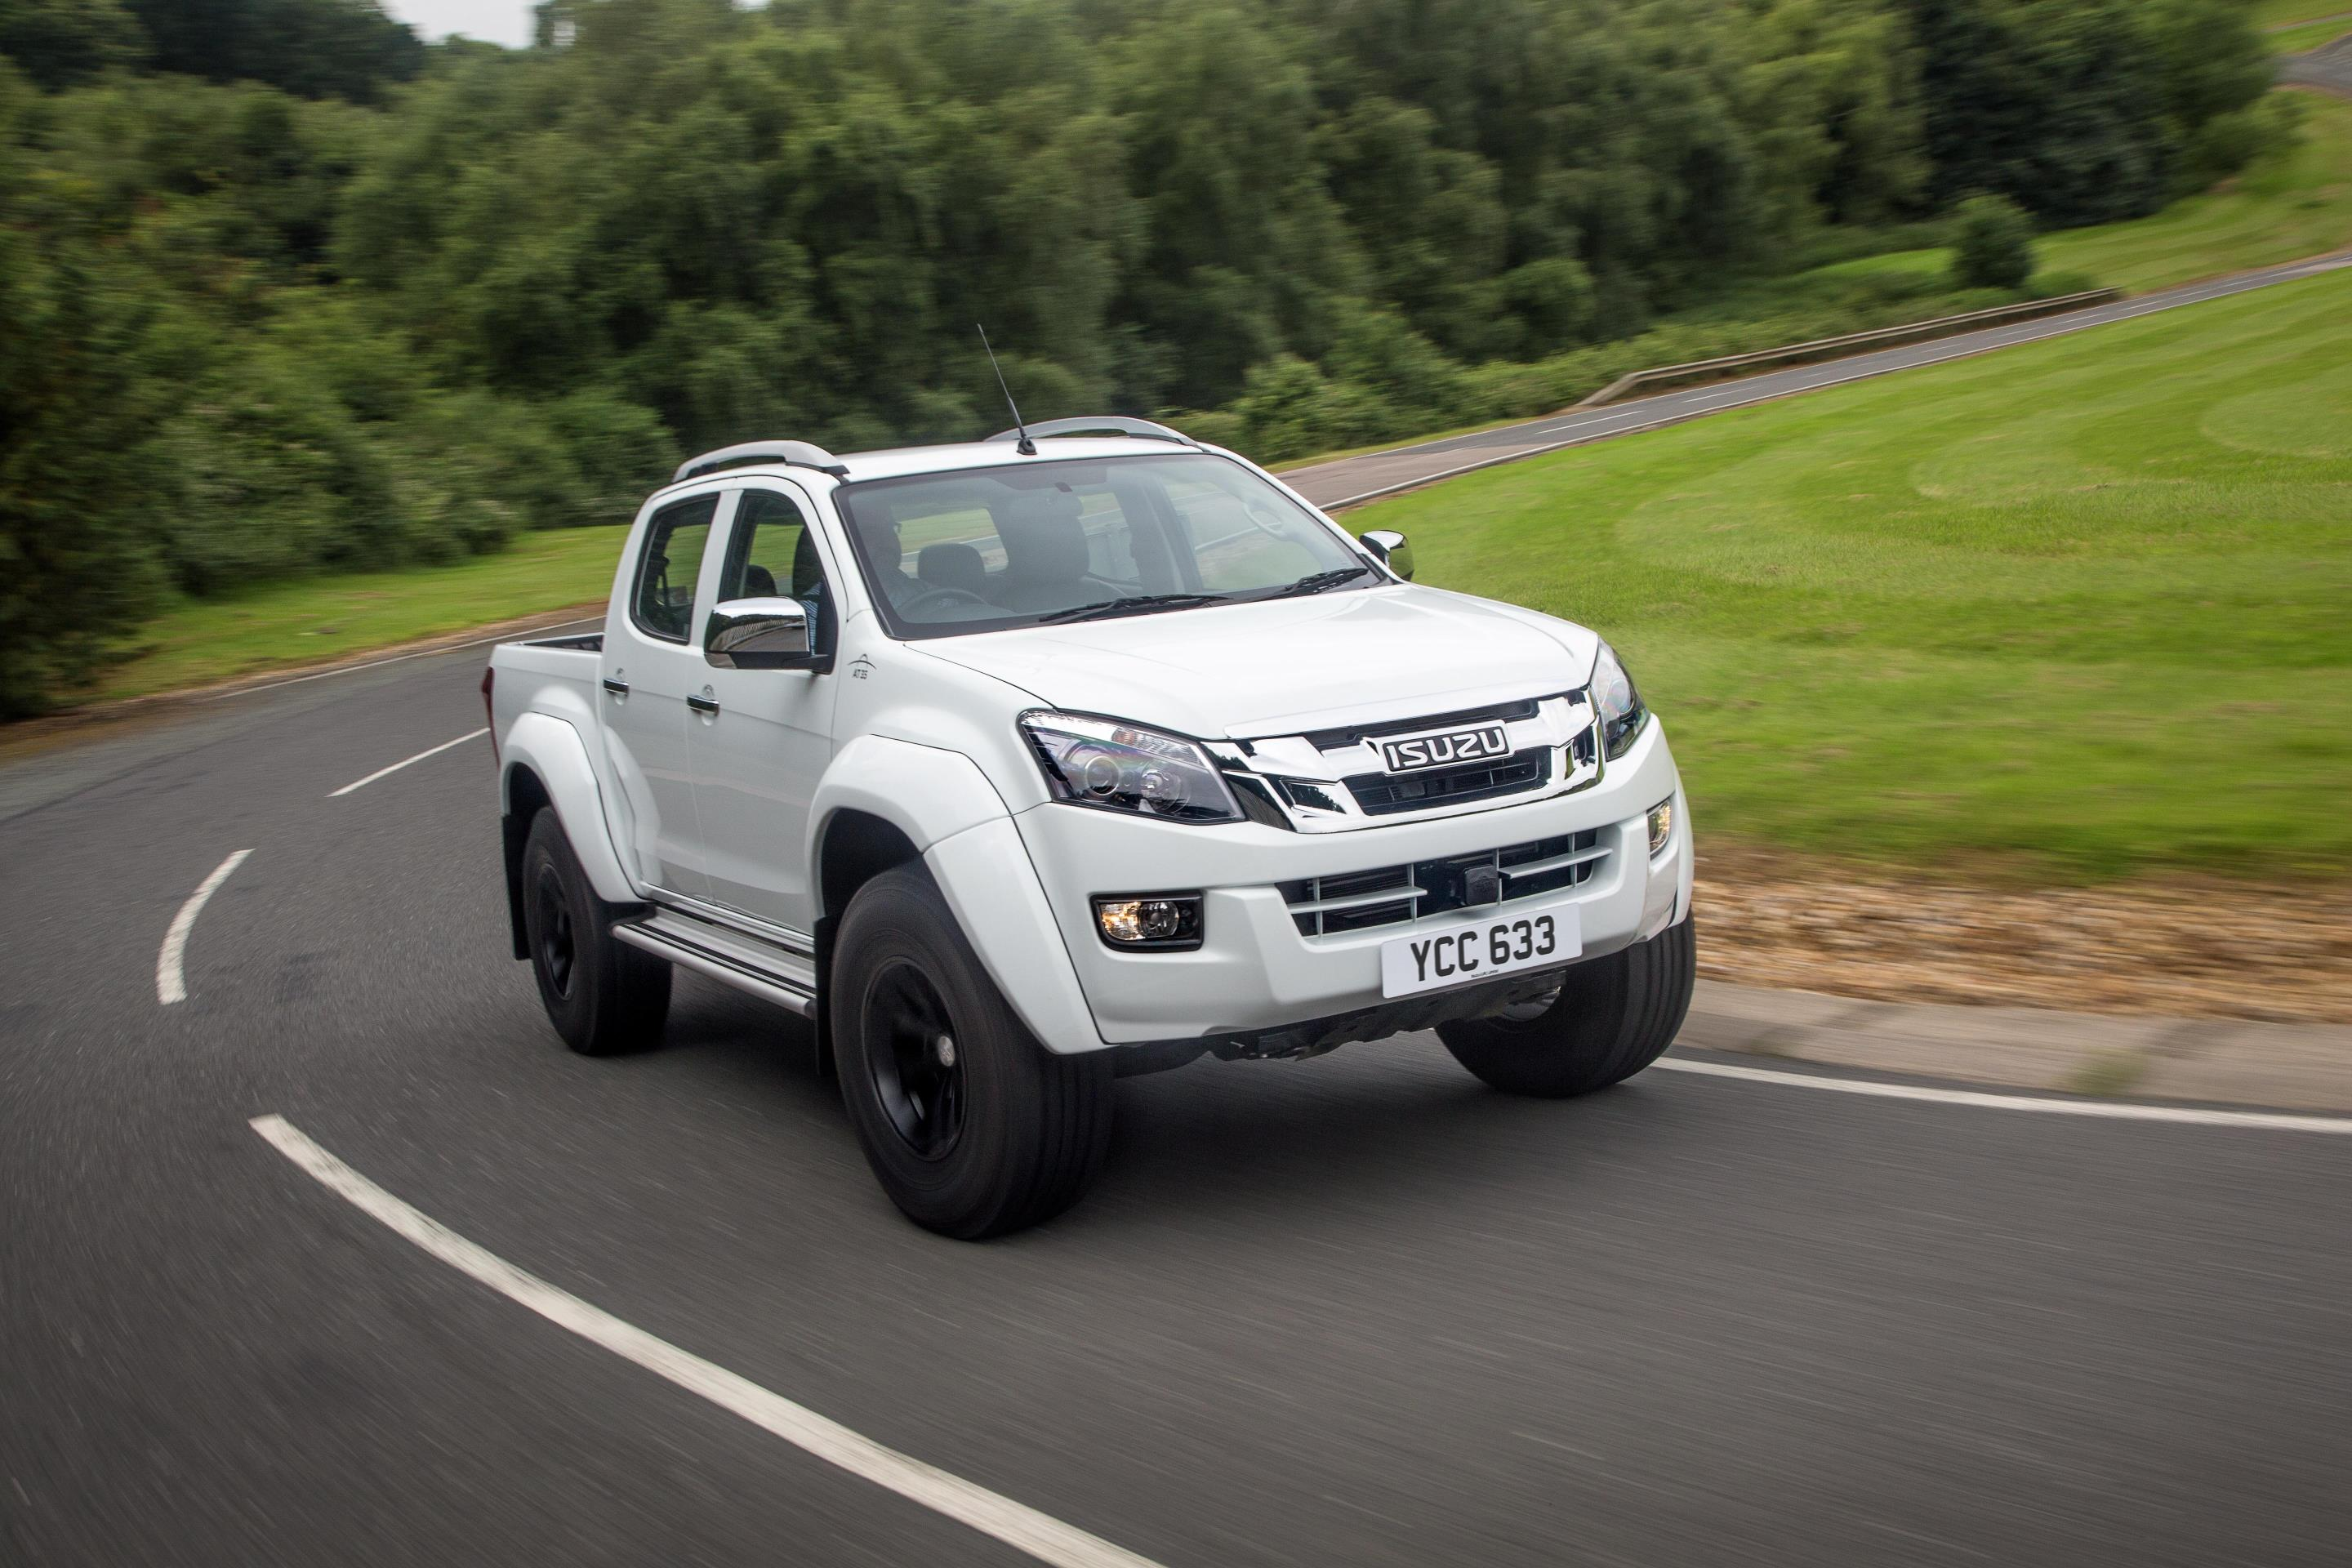 isuzu d max arctic trucks at35 price announced prepare 30 999 autoevolution. Black Bedroom Furniture Sets. Home Design Ideas